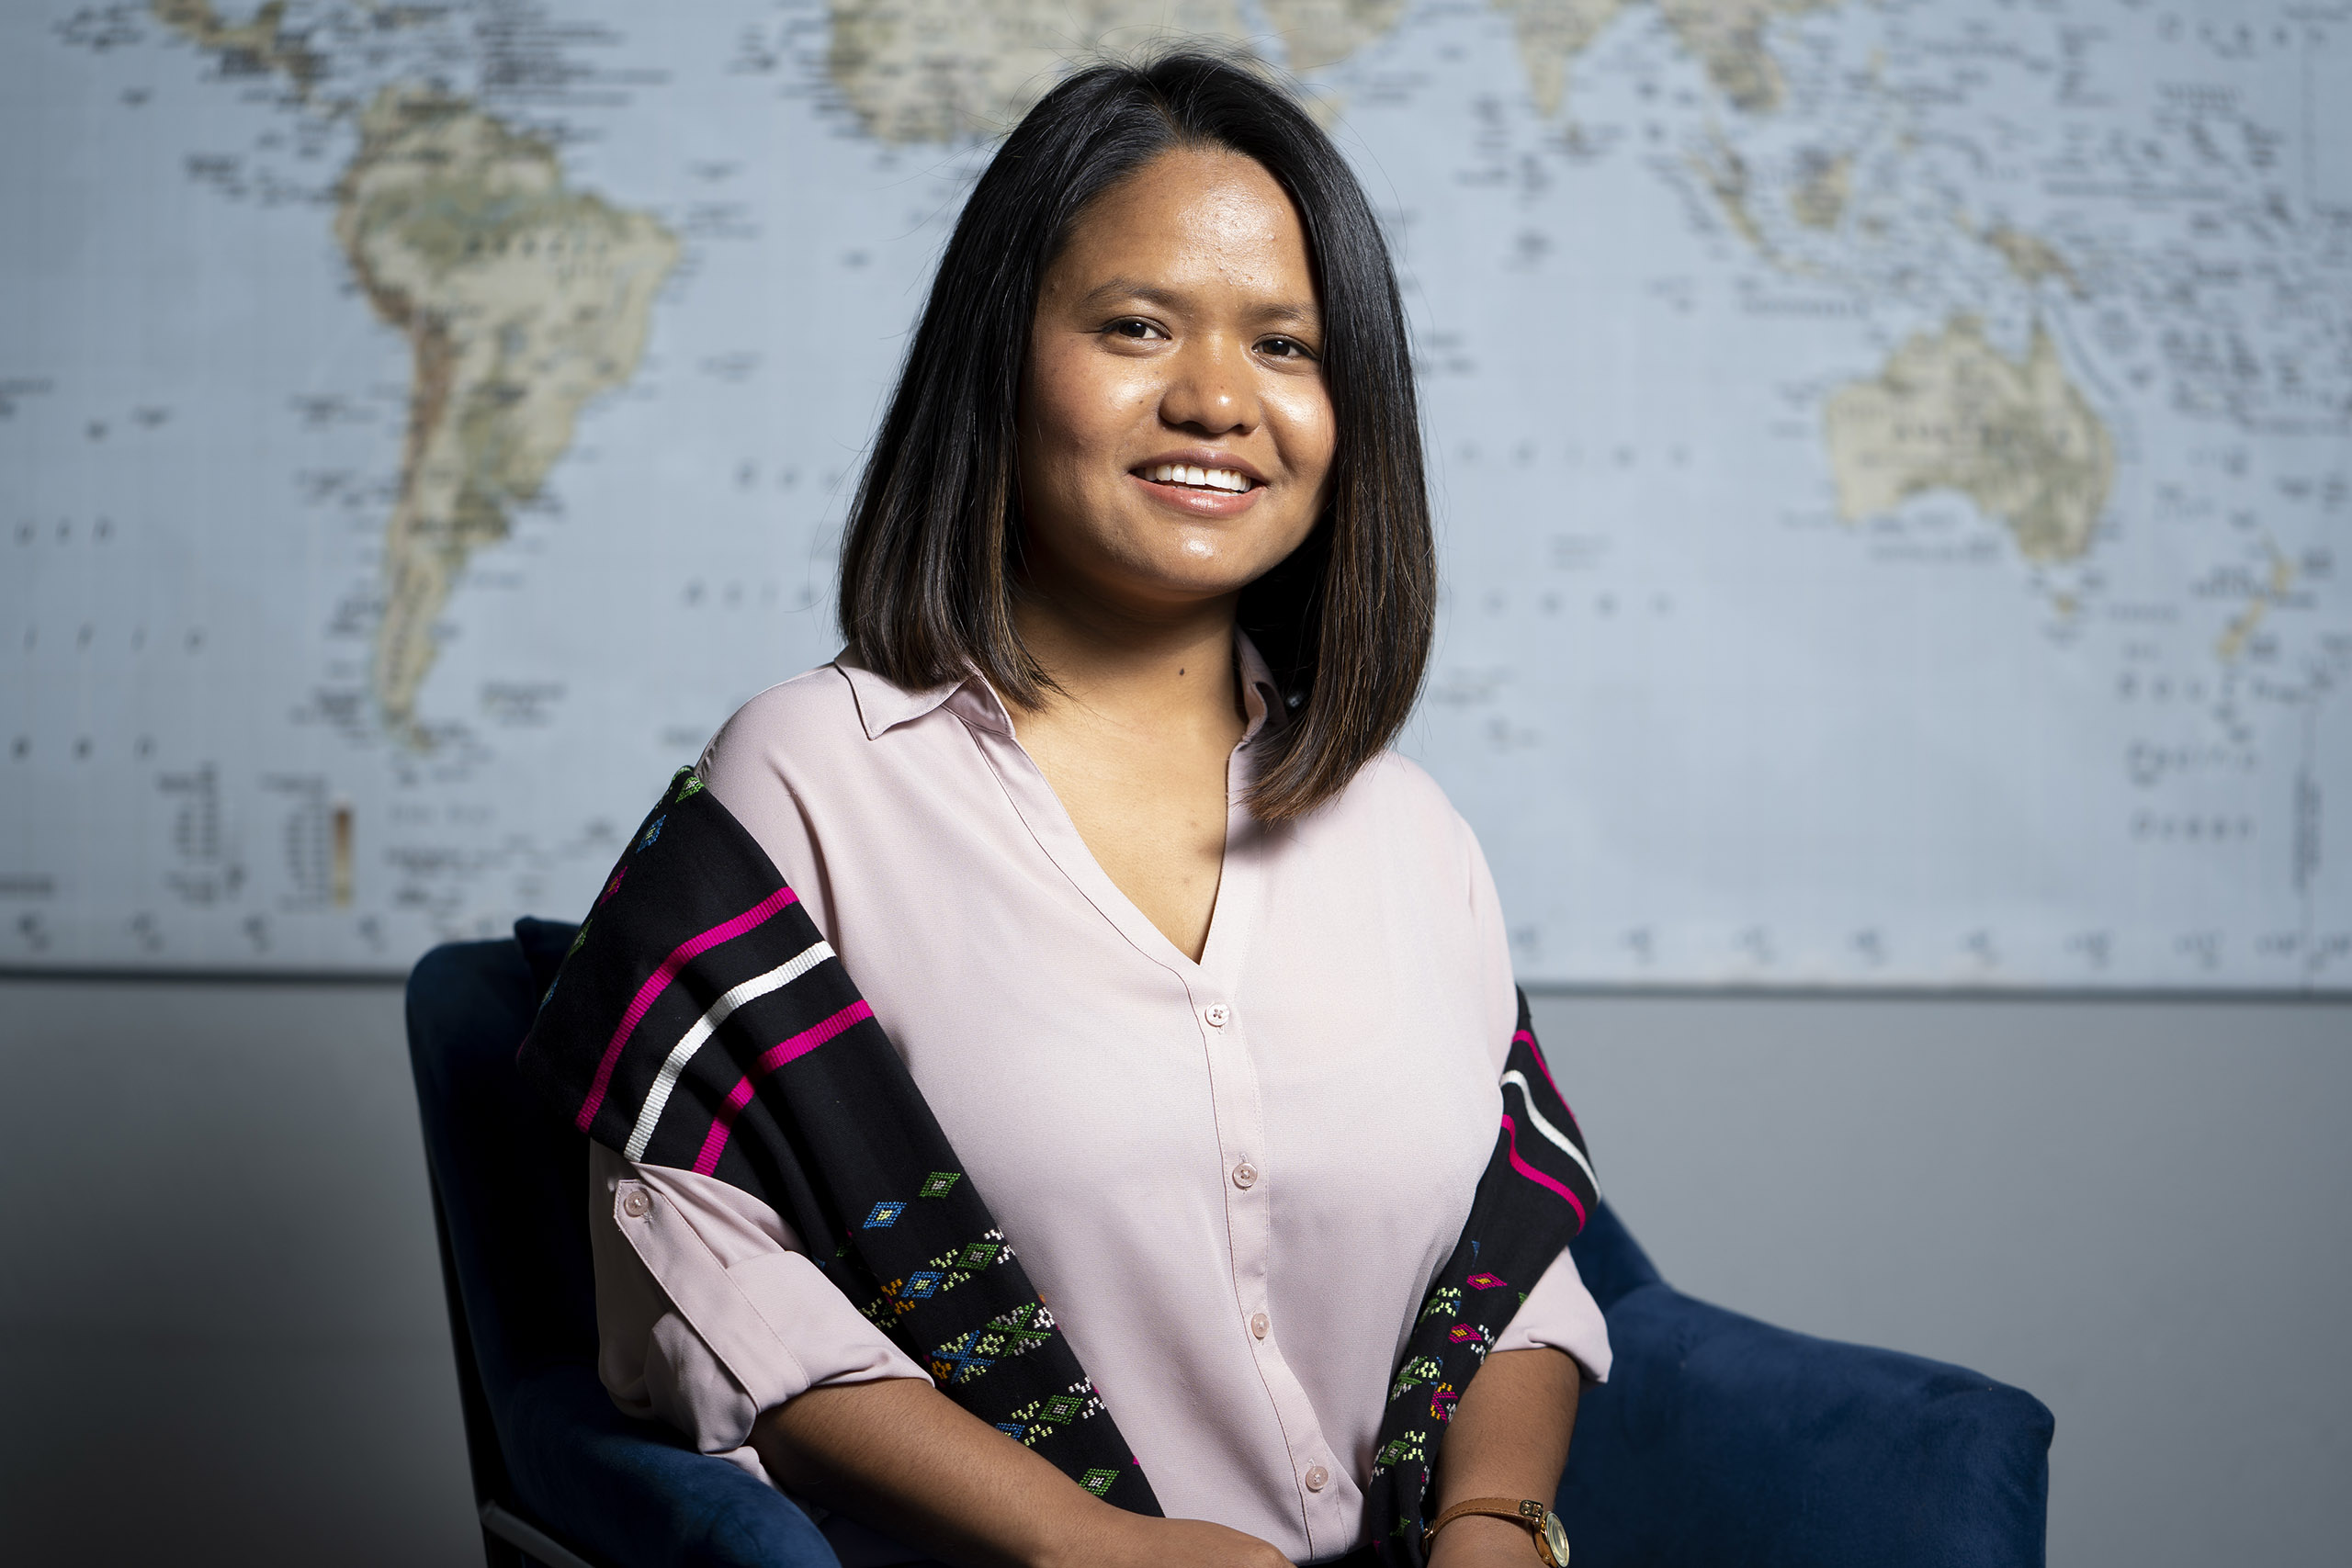 Burmese-American woman in pink blouse seated in front of a world map.